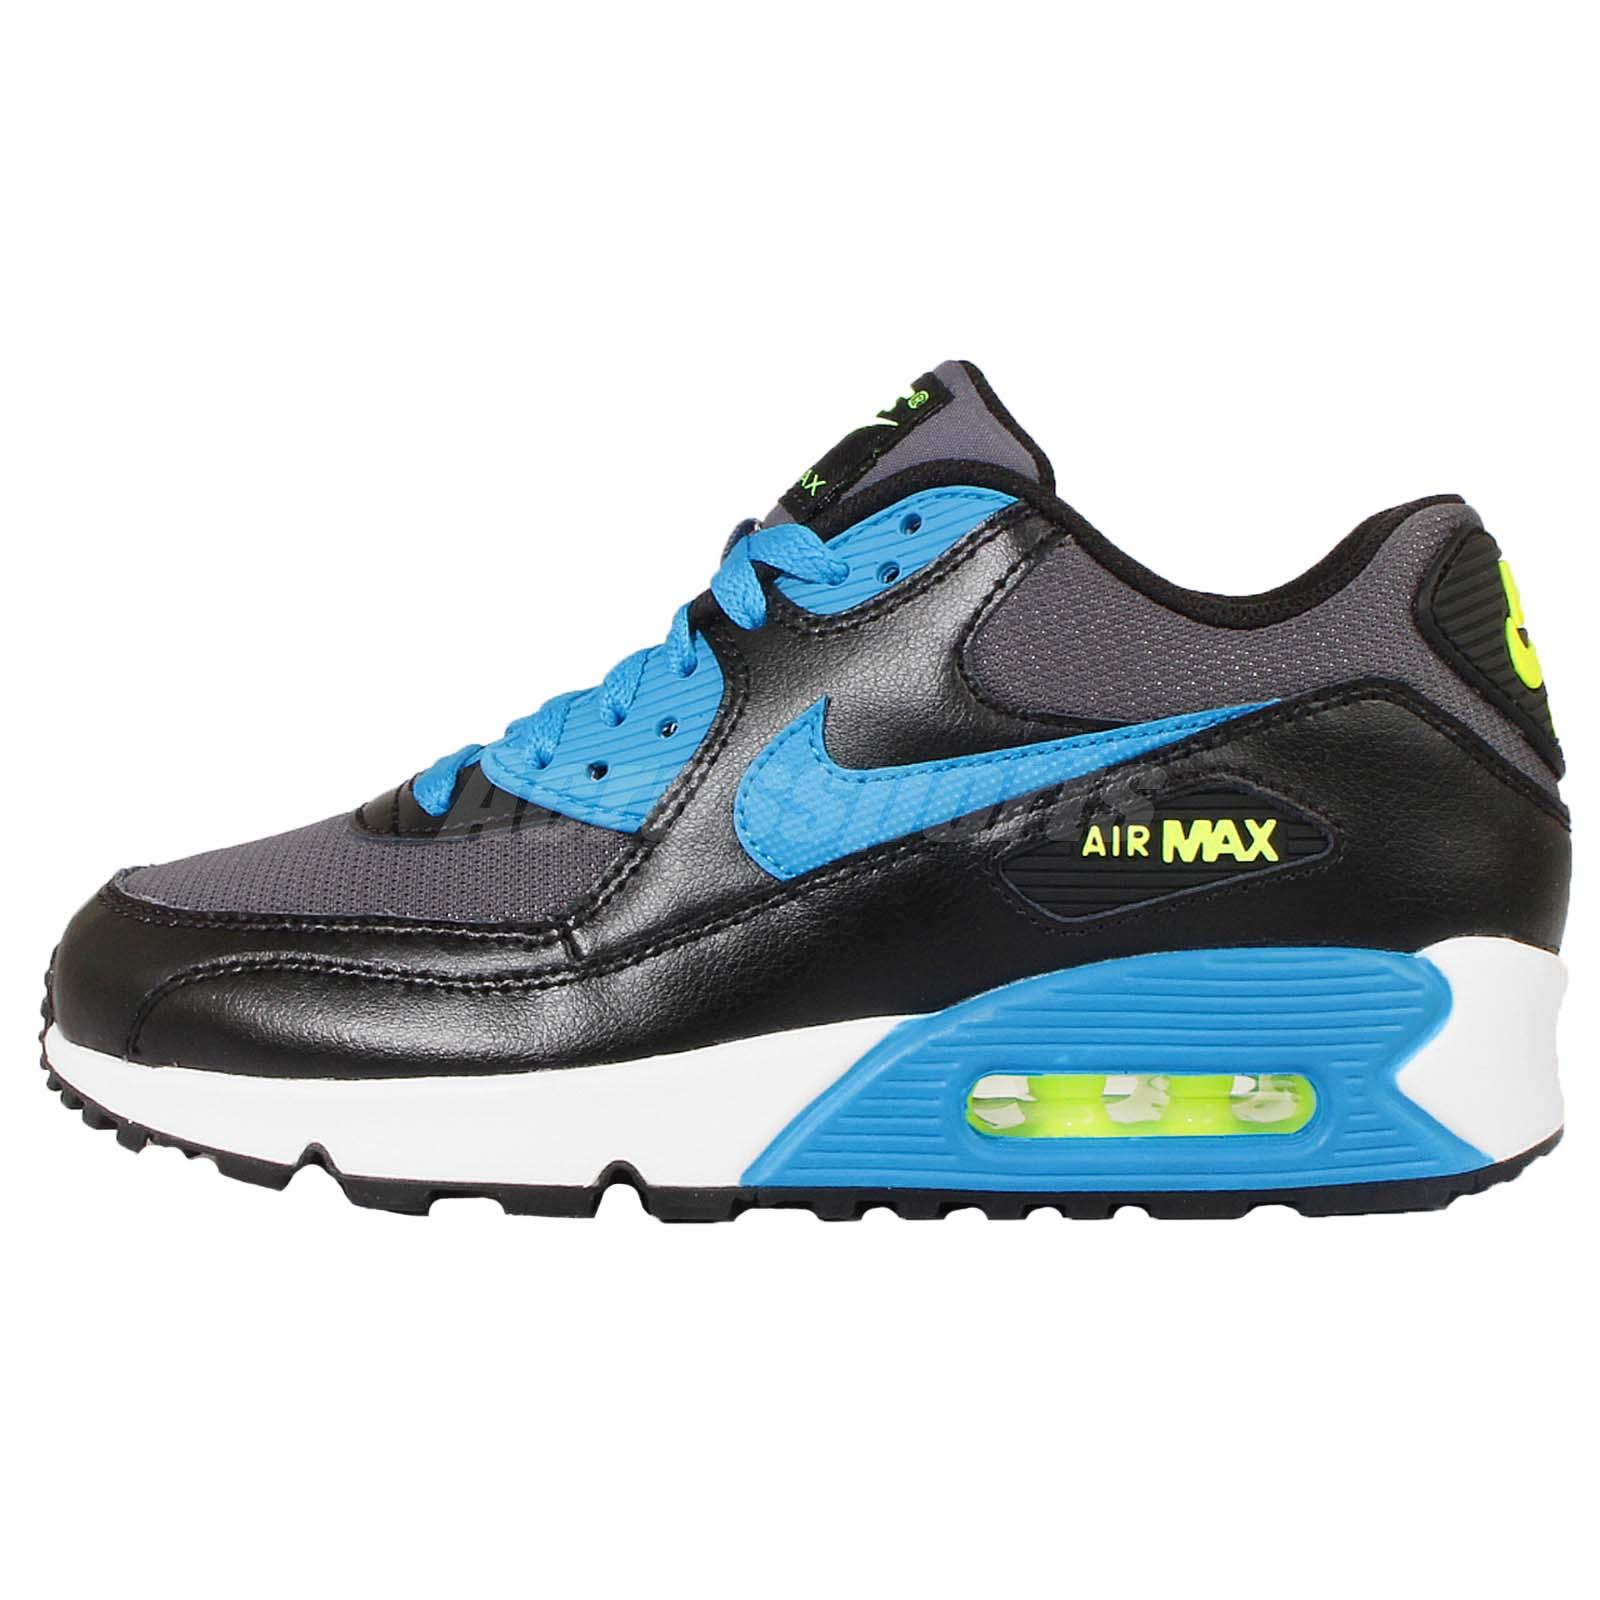 nike air max 90 gs youth womens boys girls running shoes. Black Bedroom Furniture Sets. Home Design Ideas